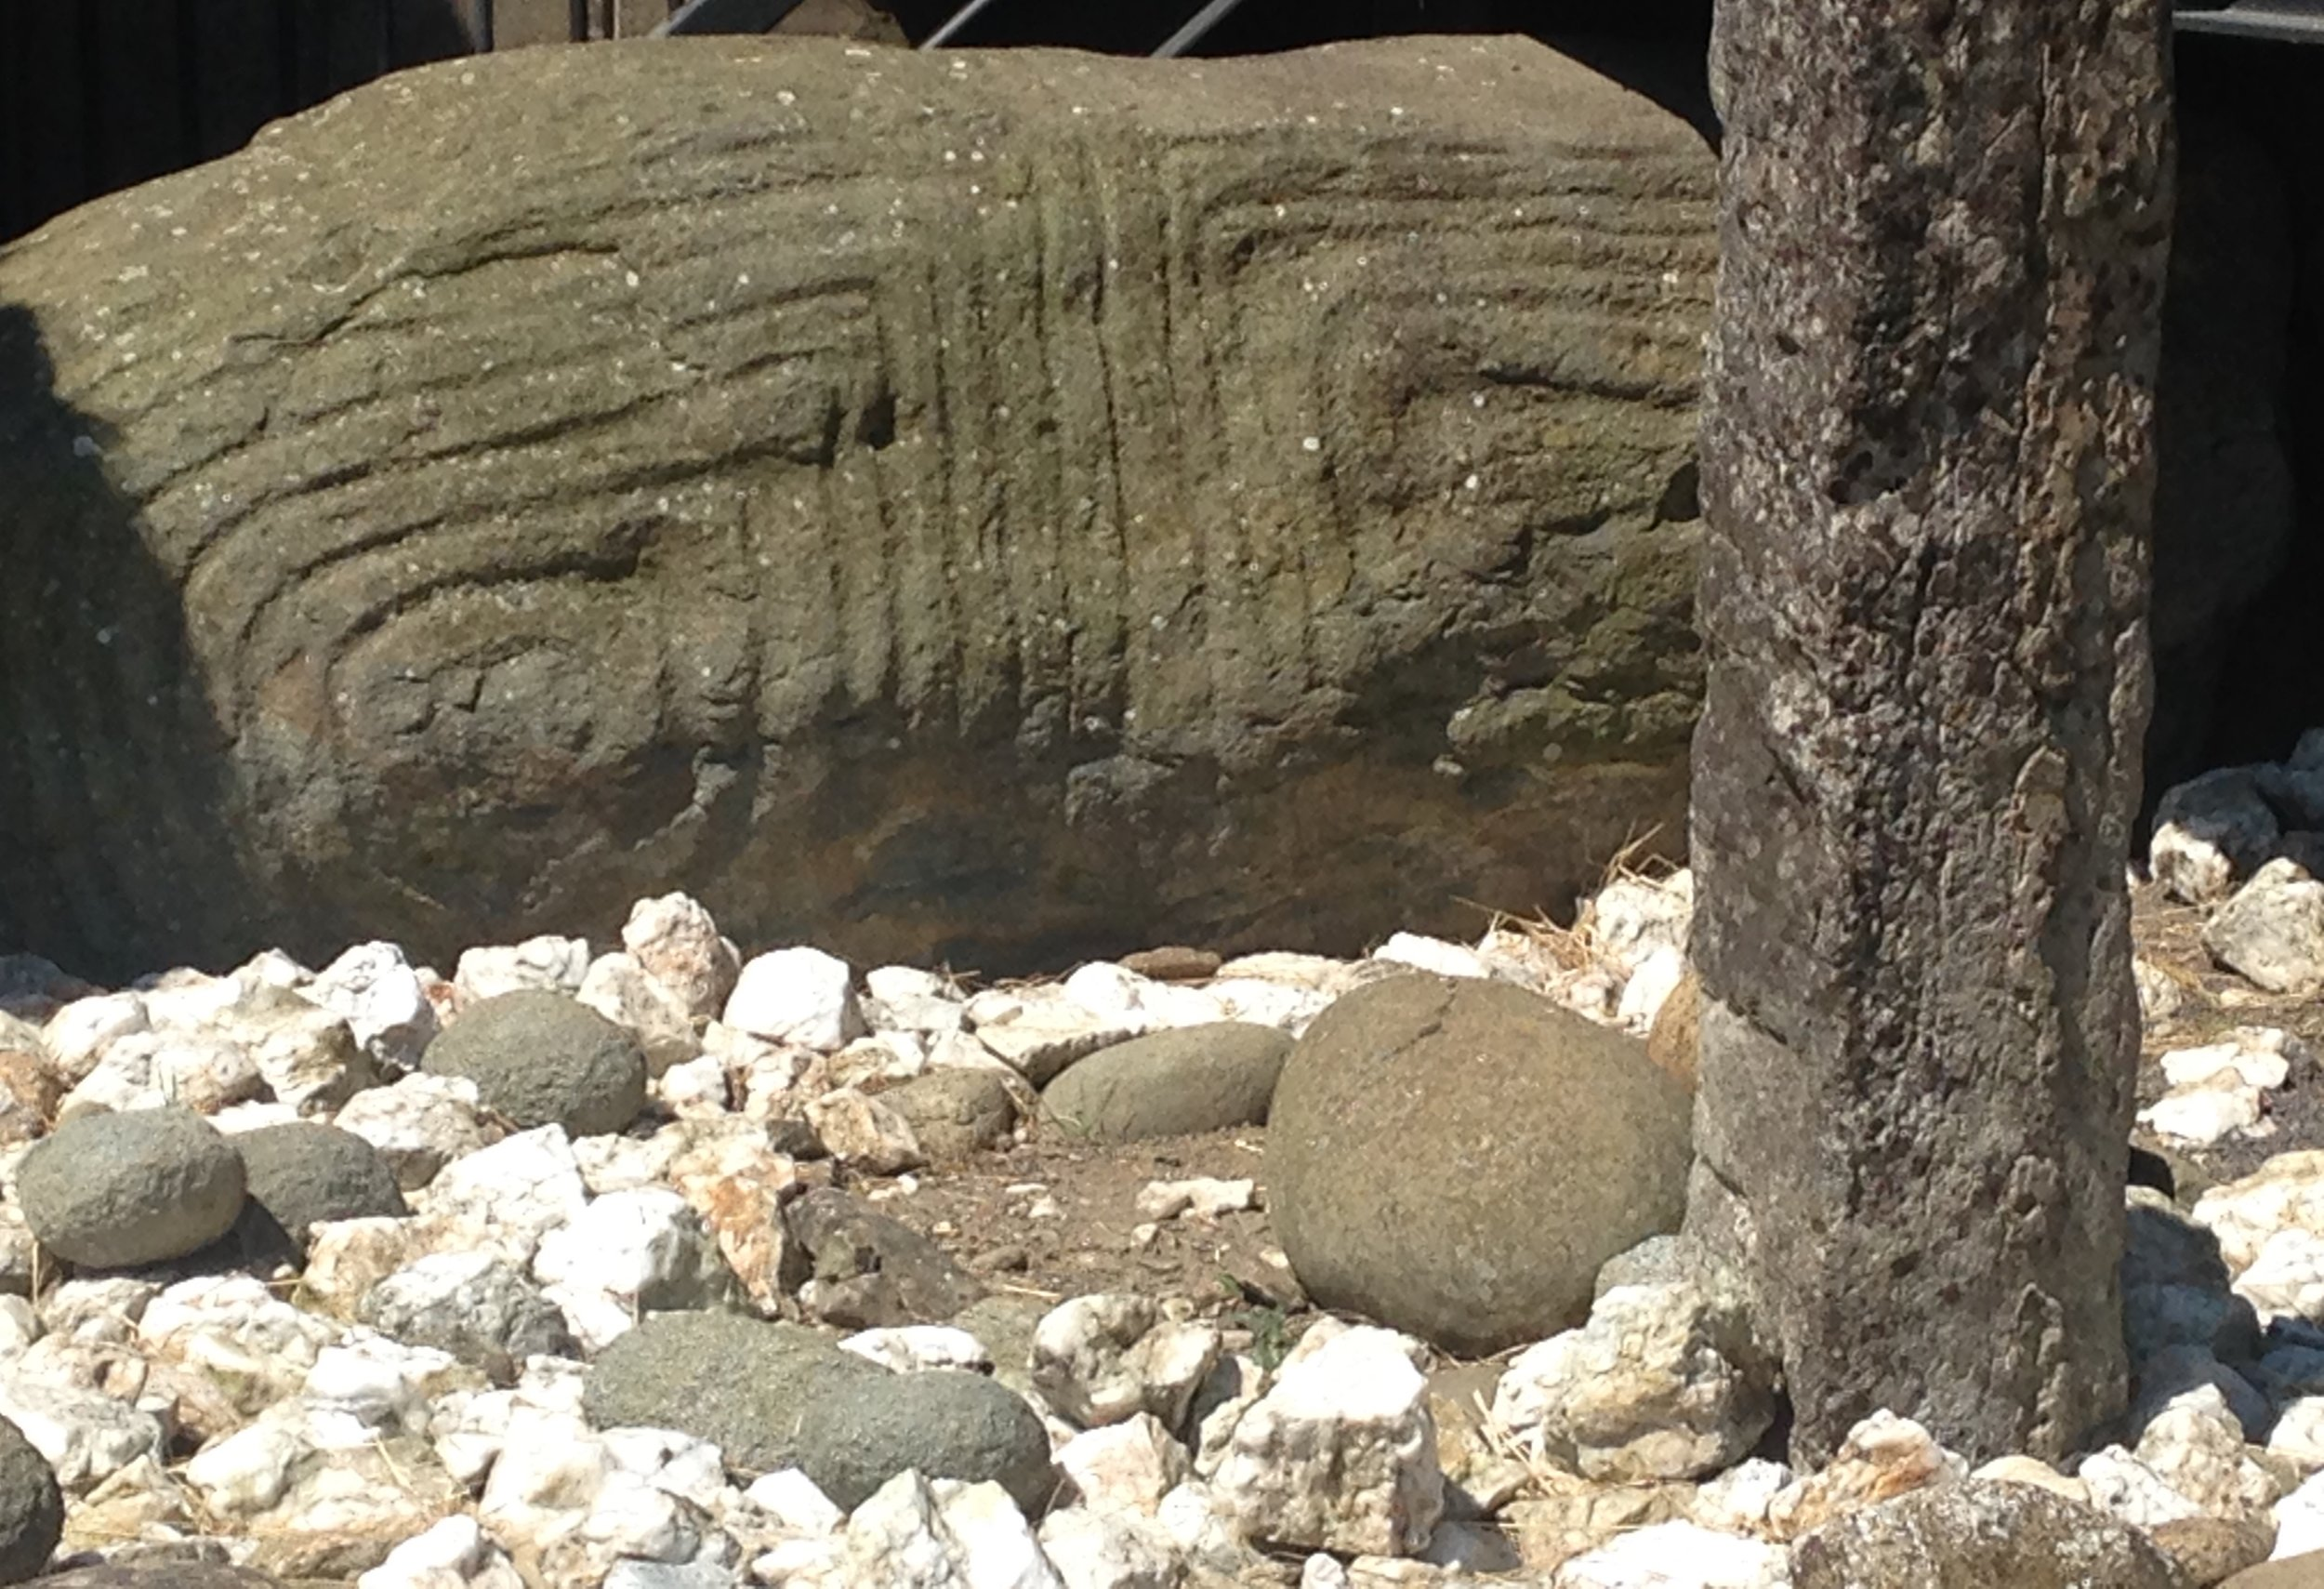 Grooved inscriptions on the entrance rock at Knowth, Ireland showing quartz and round granite rubble at its base.